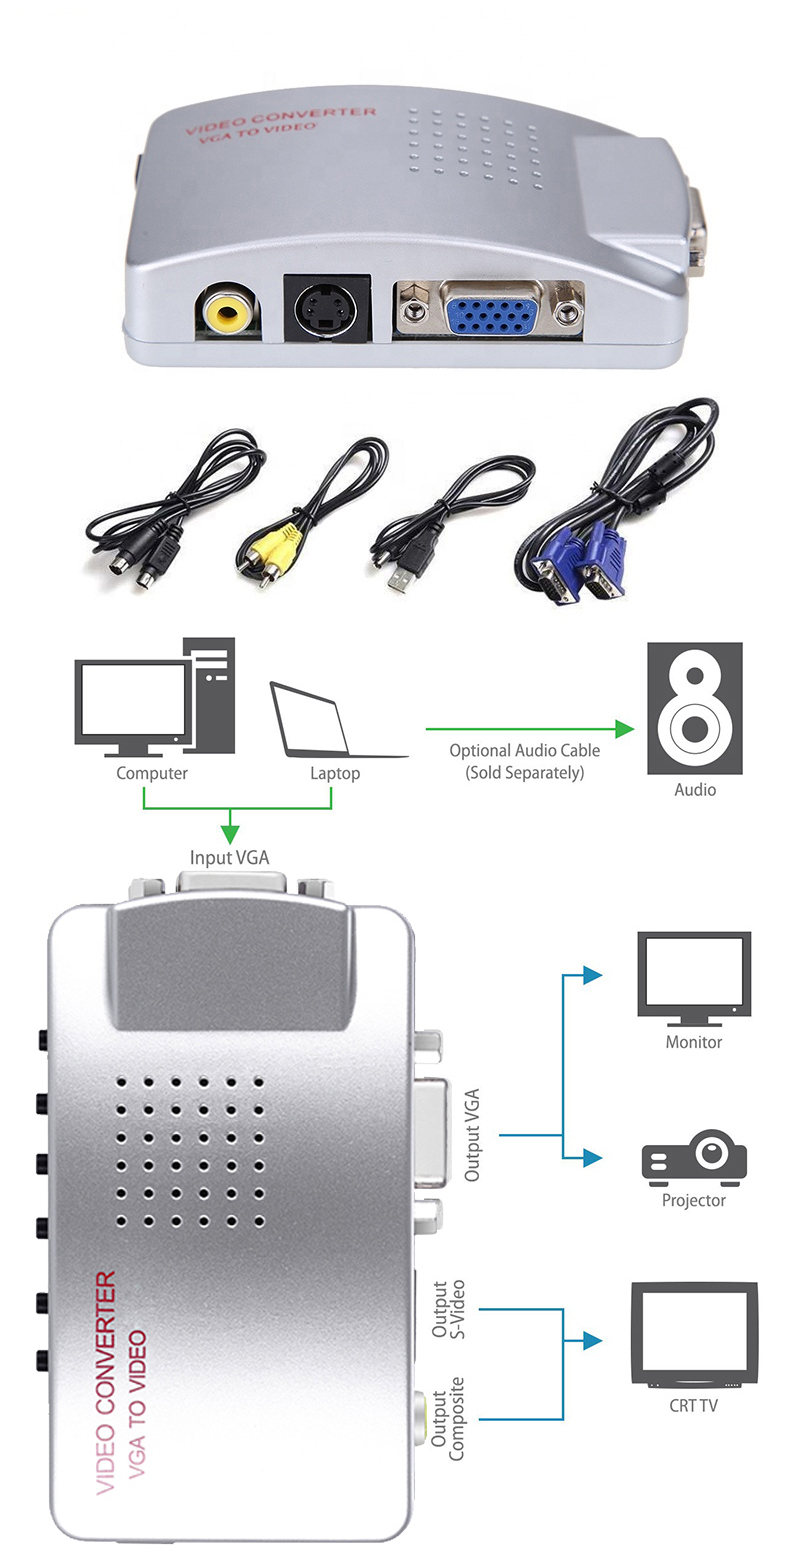 made china Hot Selling Computer Laptop PC VGA to TV AV RCA S-Video Converter Adapter Box DAC ( digital analogue converter )